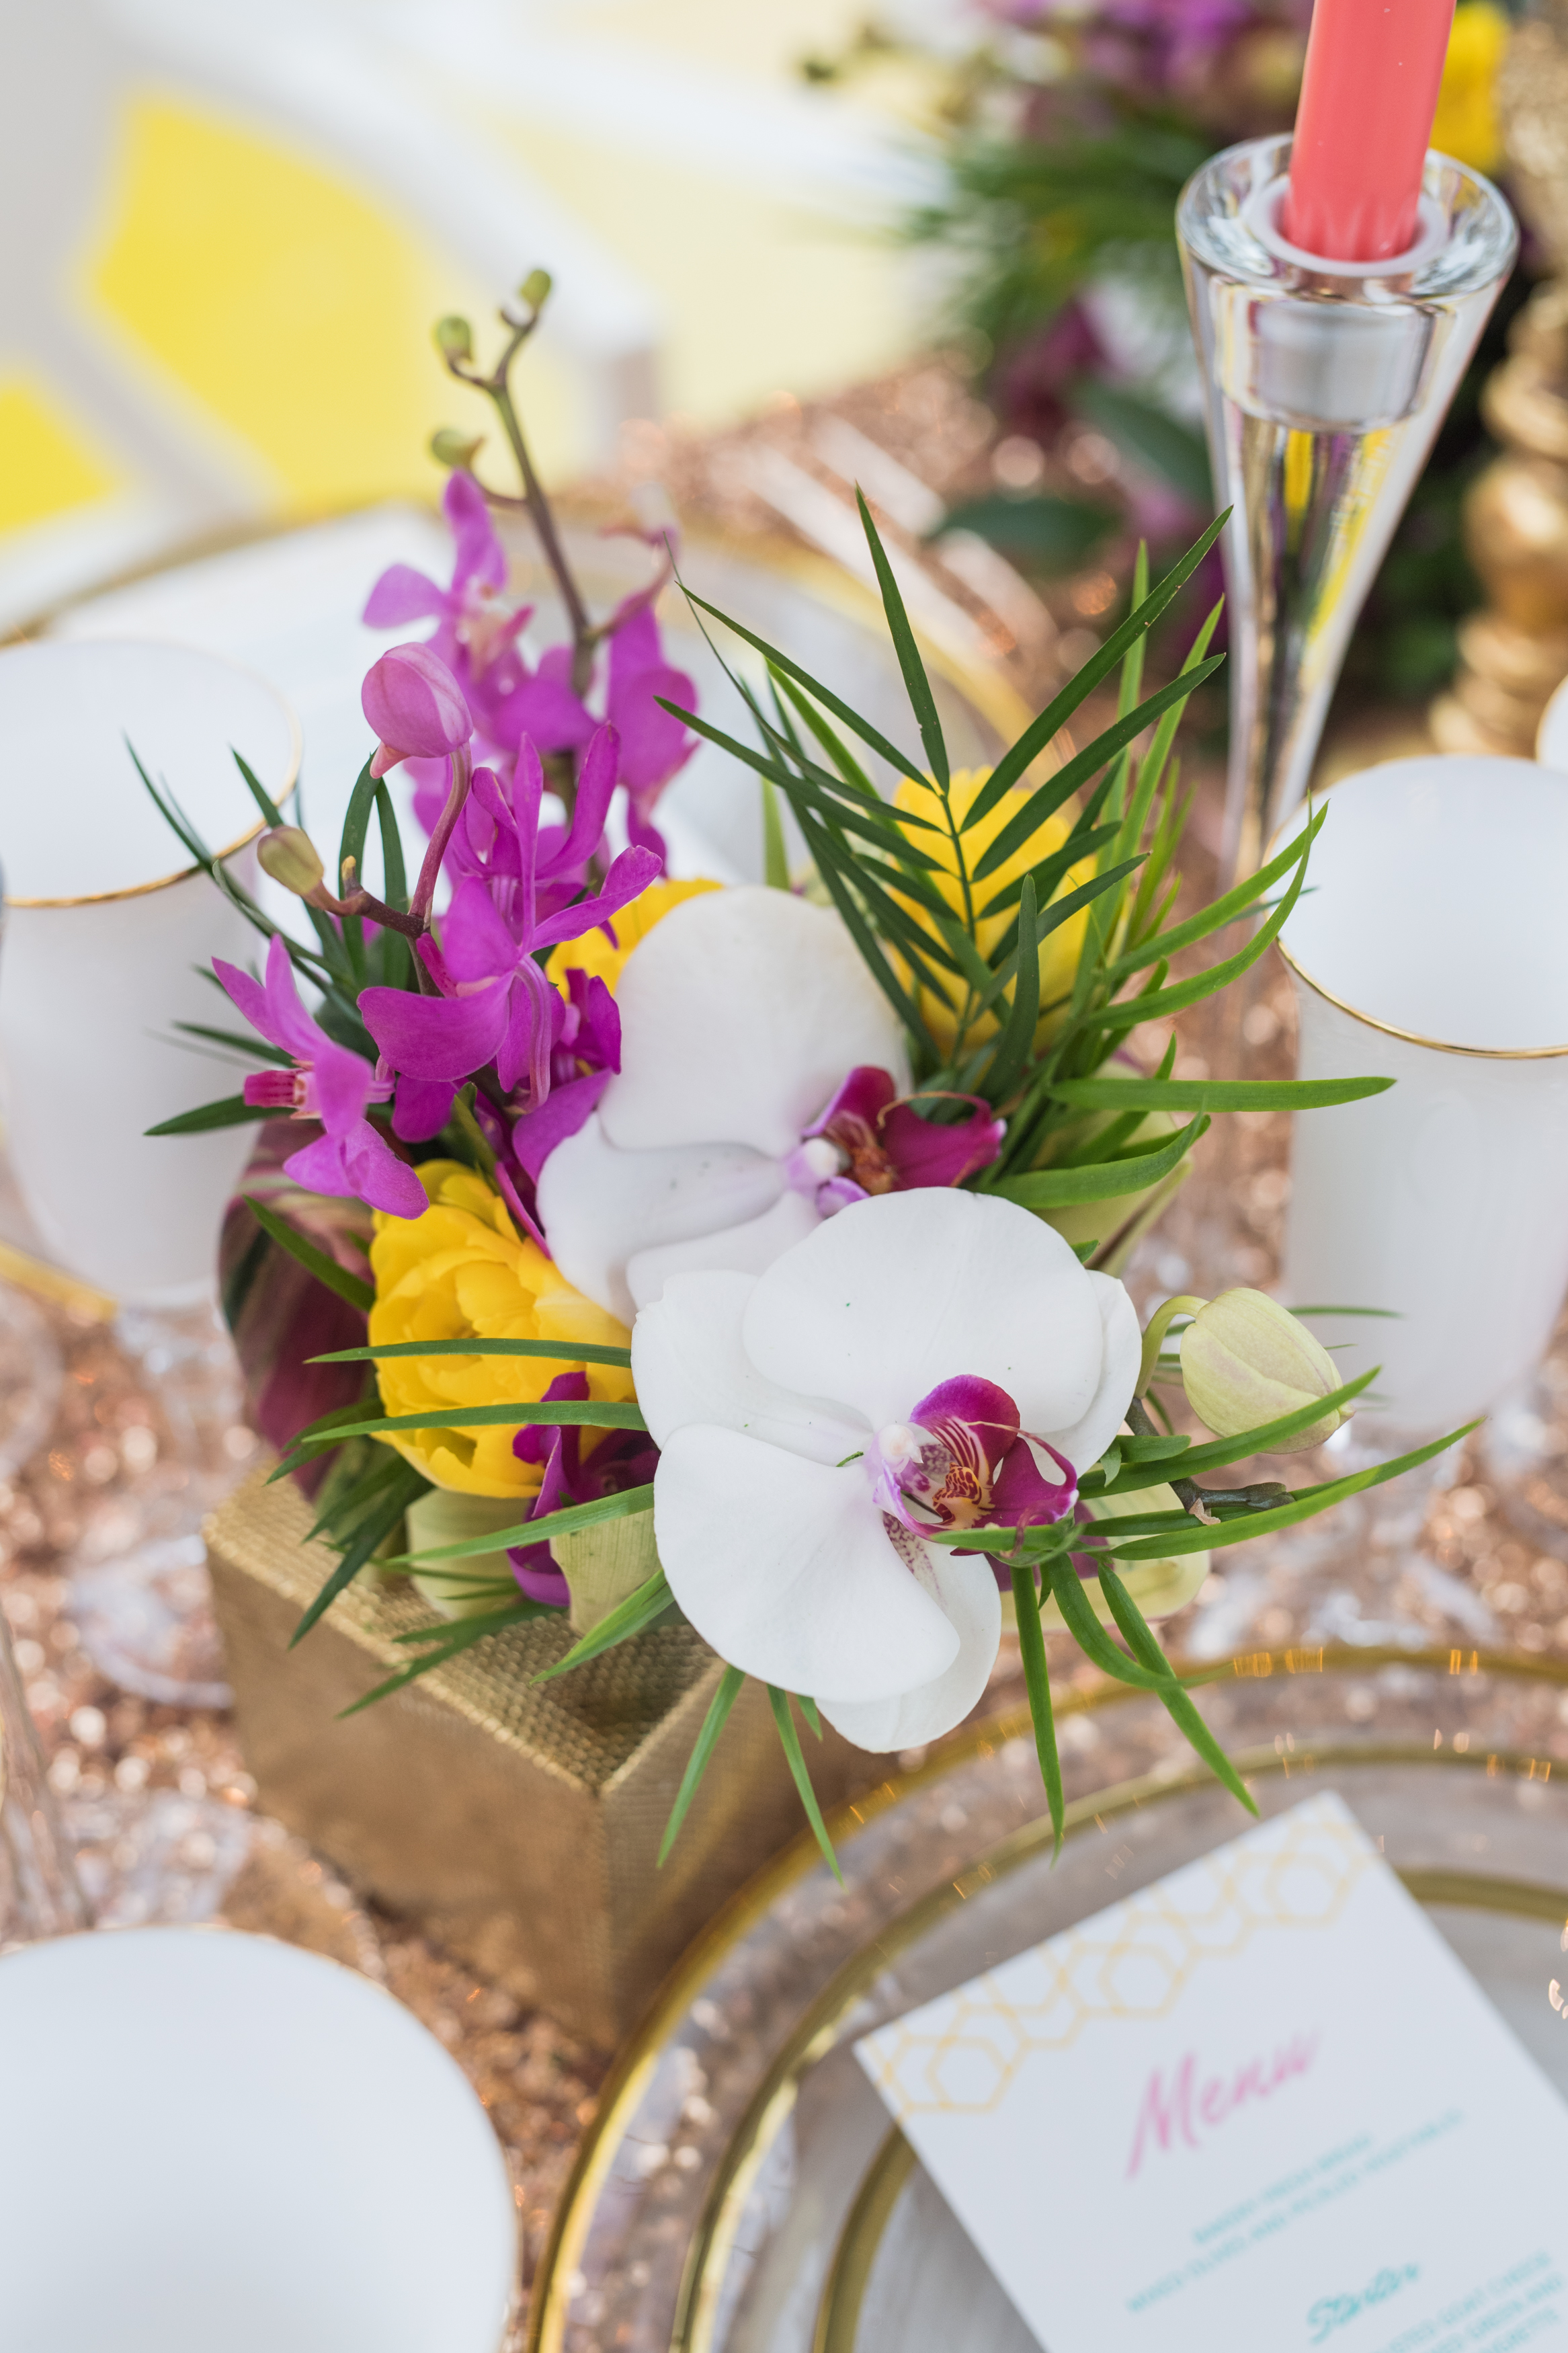 August In Bloom - Orchid centrepiece - #SQ1Bridal (Square One Shopping Centre)